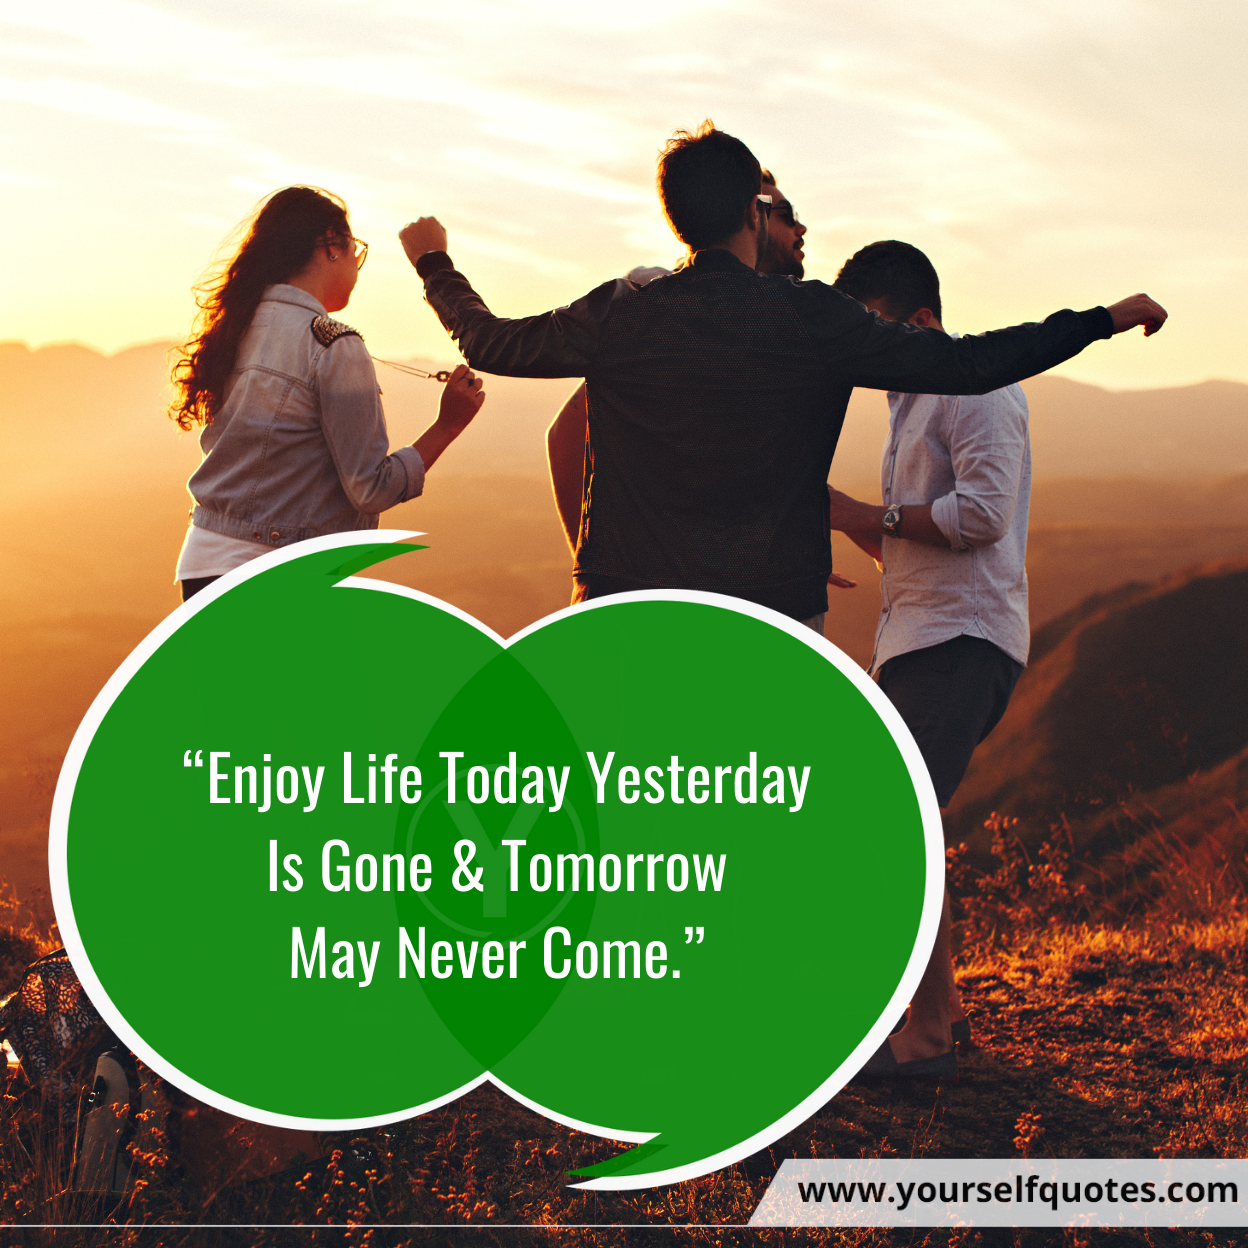 Enjoy Life Quotes Images